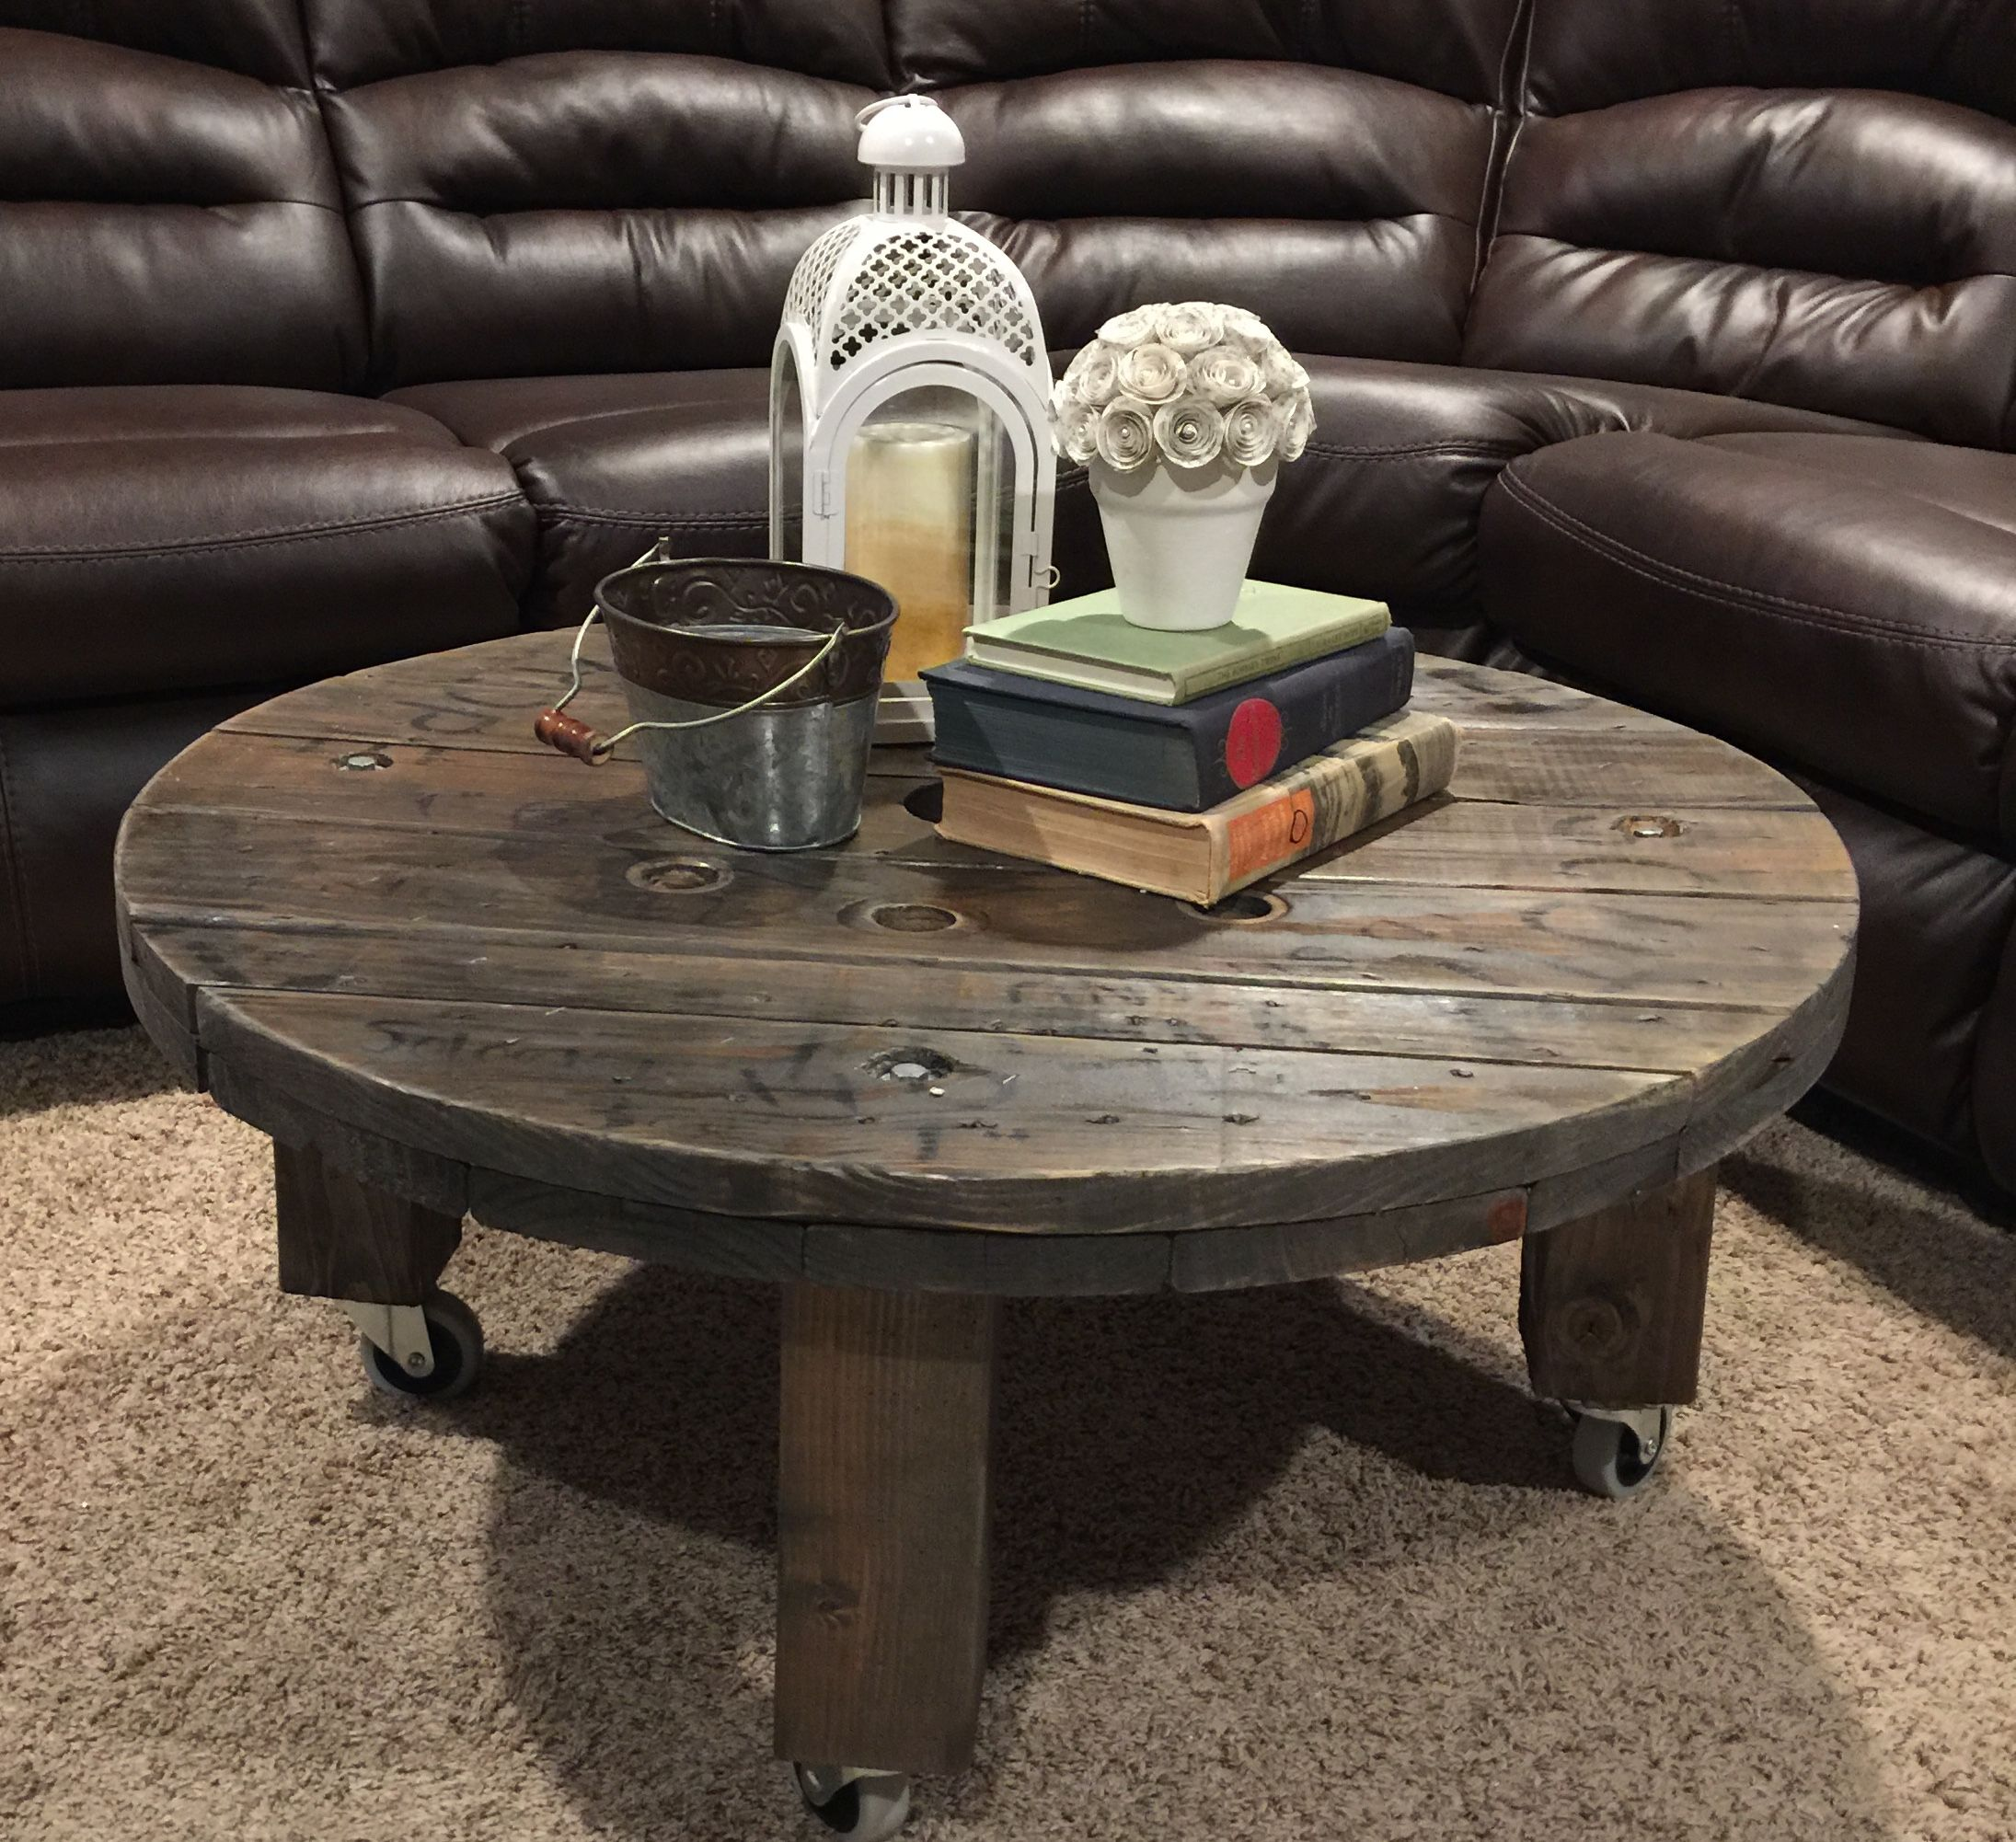 Wire spool coffee table House Pinterest